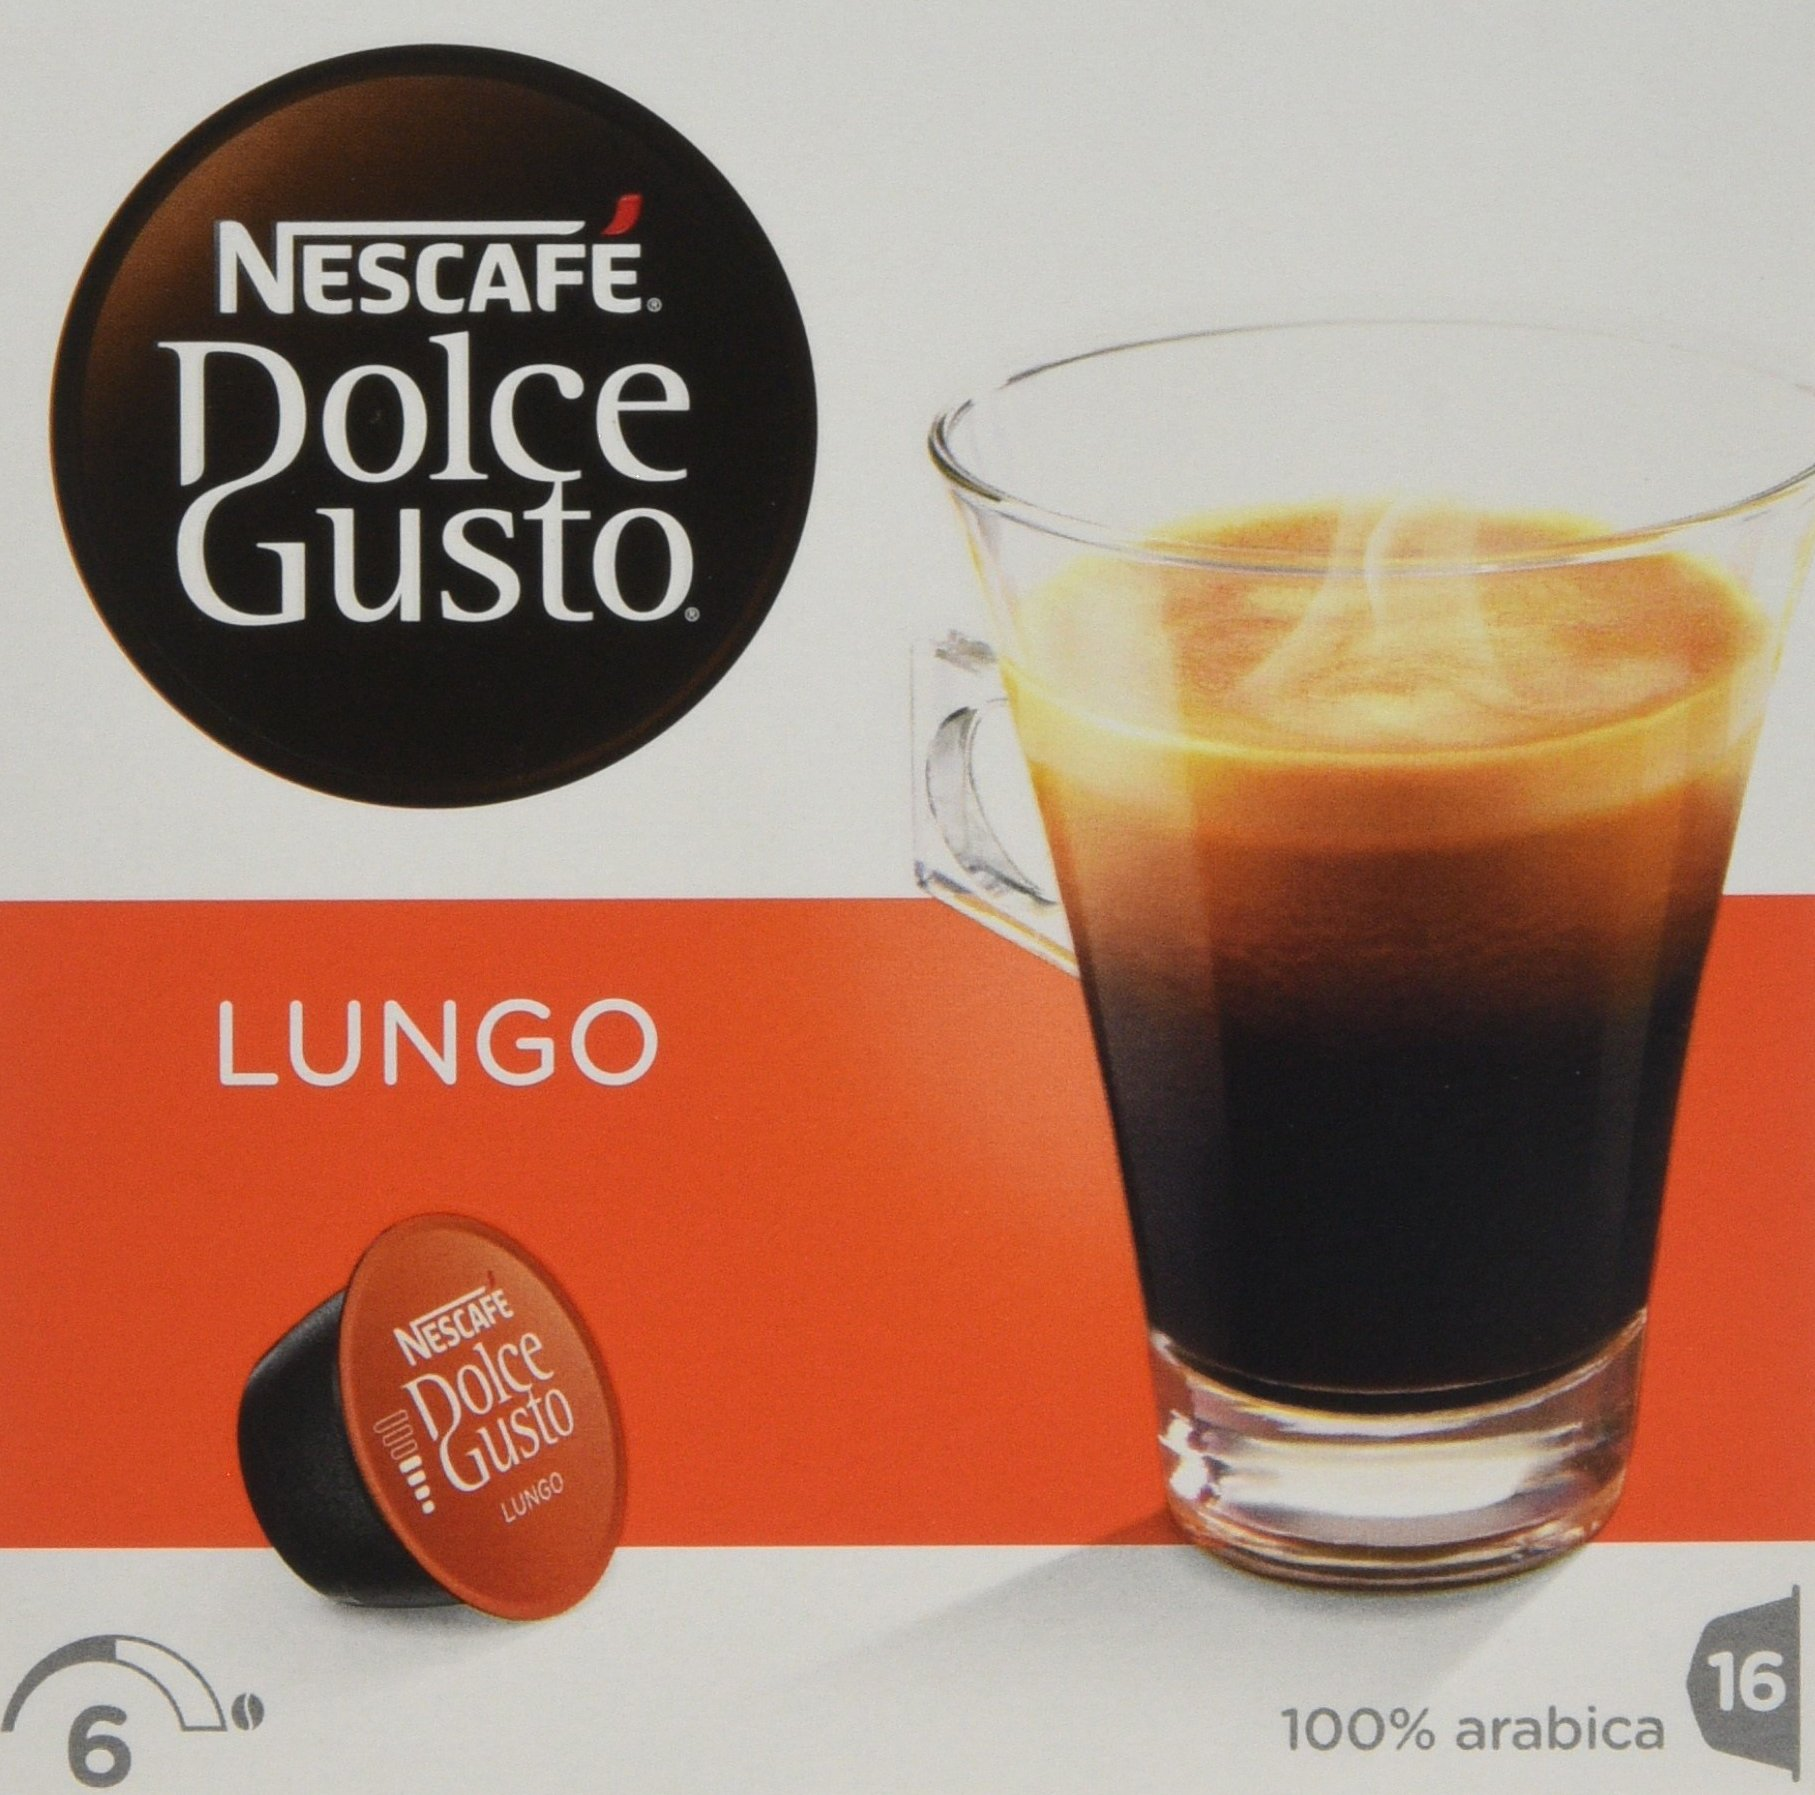 Nescafé Dolce Gusto Lungo coffee pods and capsules (a blackcurrant sweetness coffee with aromas of fresh fruit and petals)